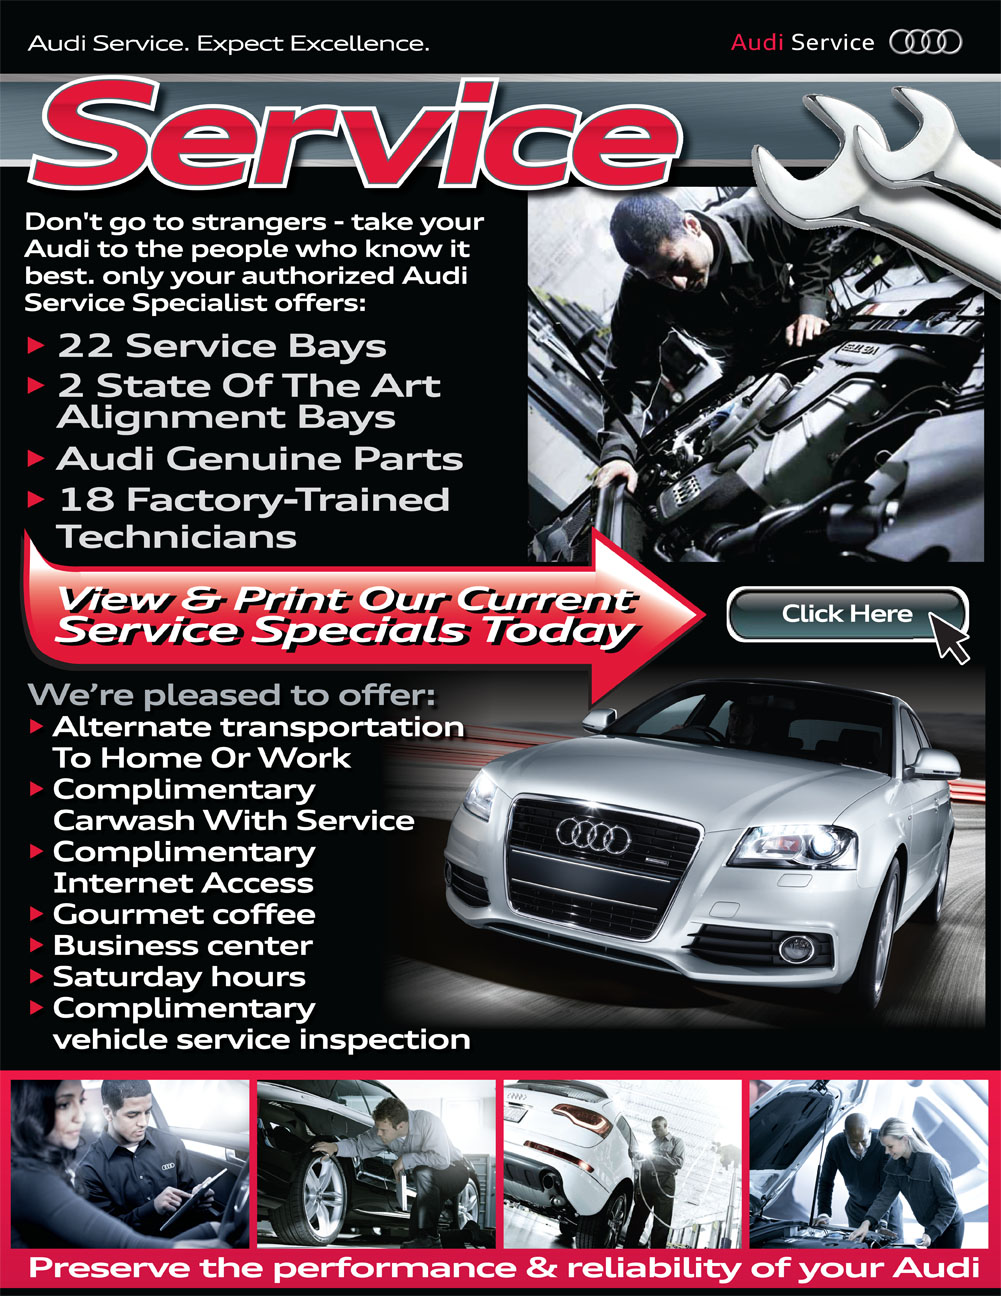 Audi Service Center Coral Springs FL - Current audi offers